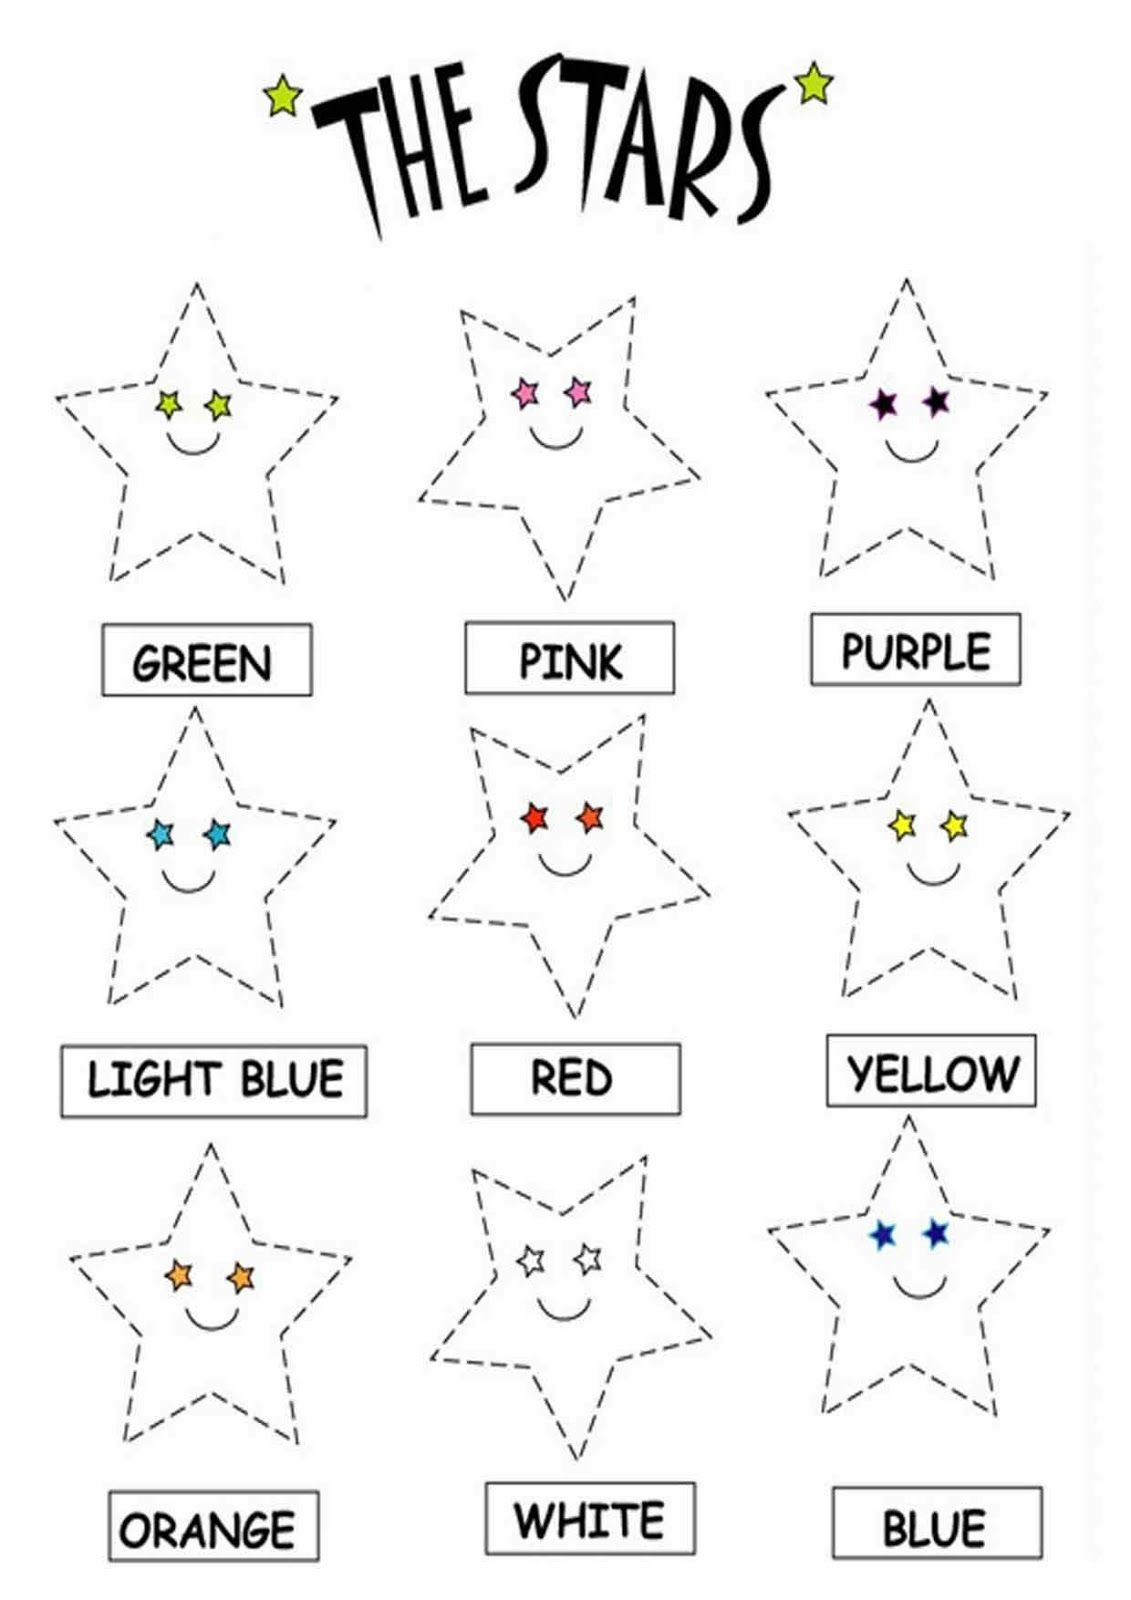 Color The Stars Worksheets. Download Free Printable And Interactive - Colors Worksheets For Preschoolers Free Printables